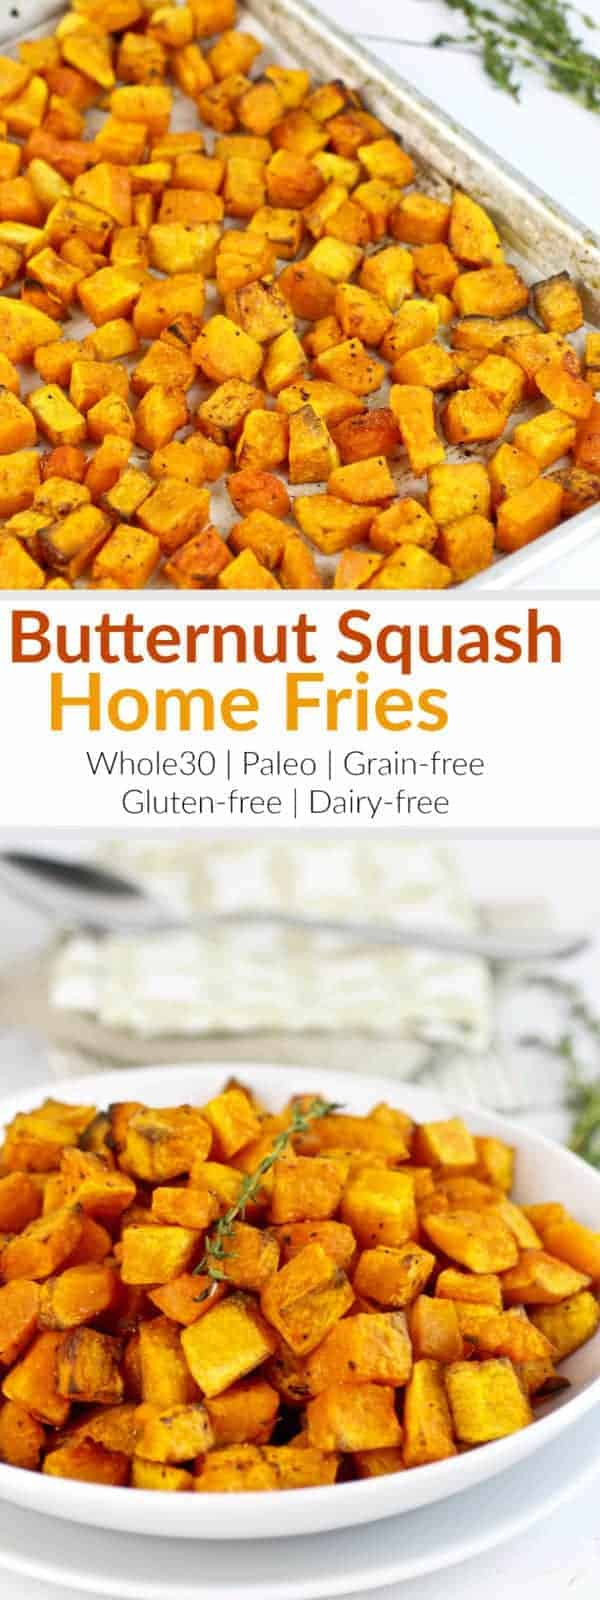 Butternut Squash Home Fries pin